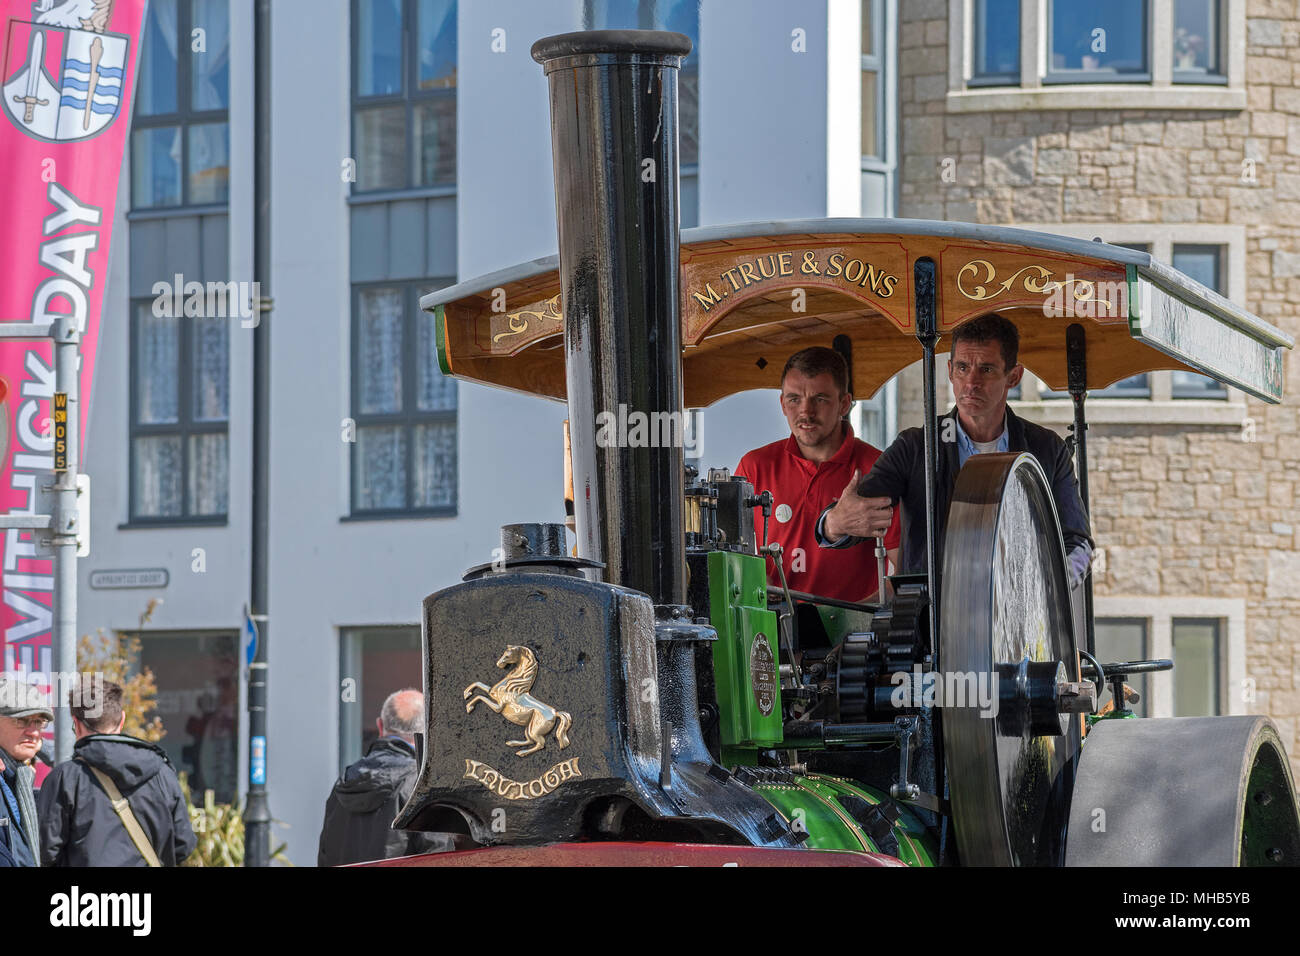 steam engine trevithick day in camborne, cornwall, england, britain, uk. - Stock Image